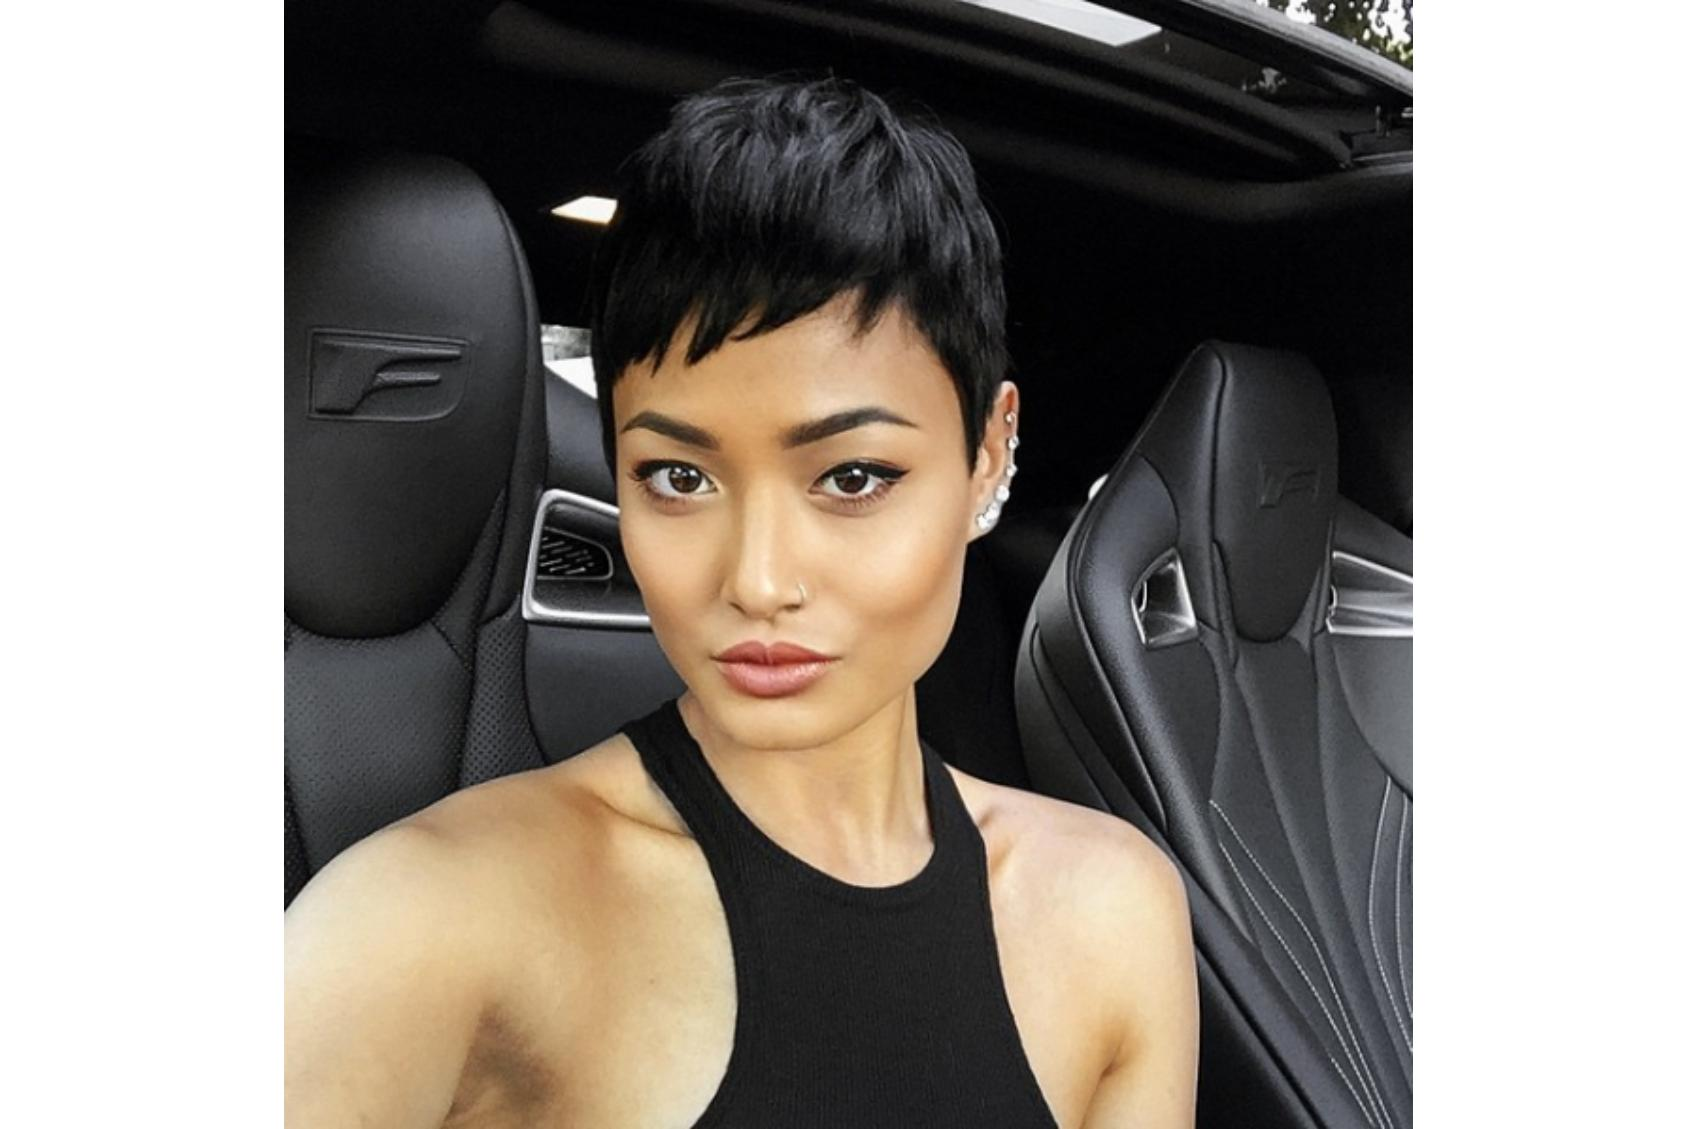 Feeling brave? Chop it all off and go for a pixie cut.